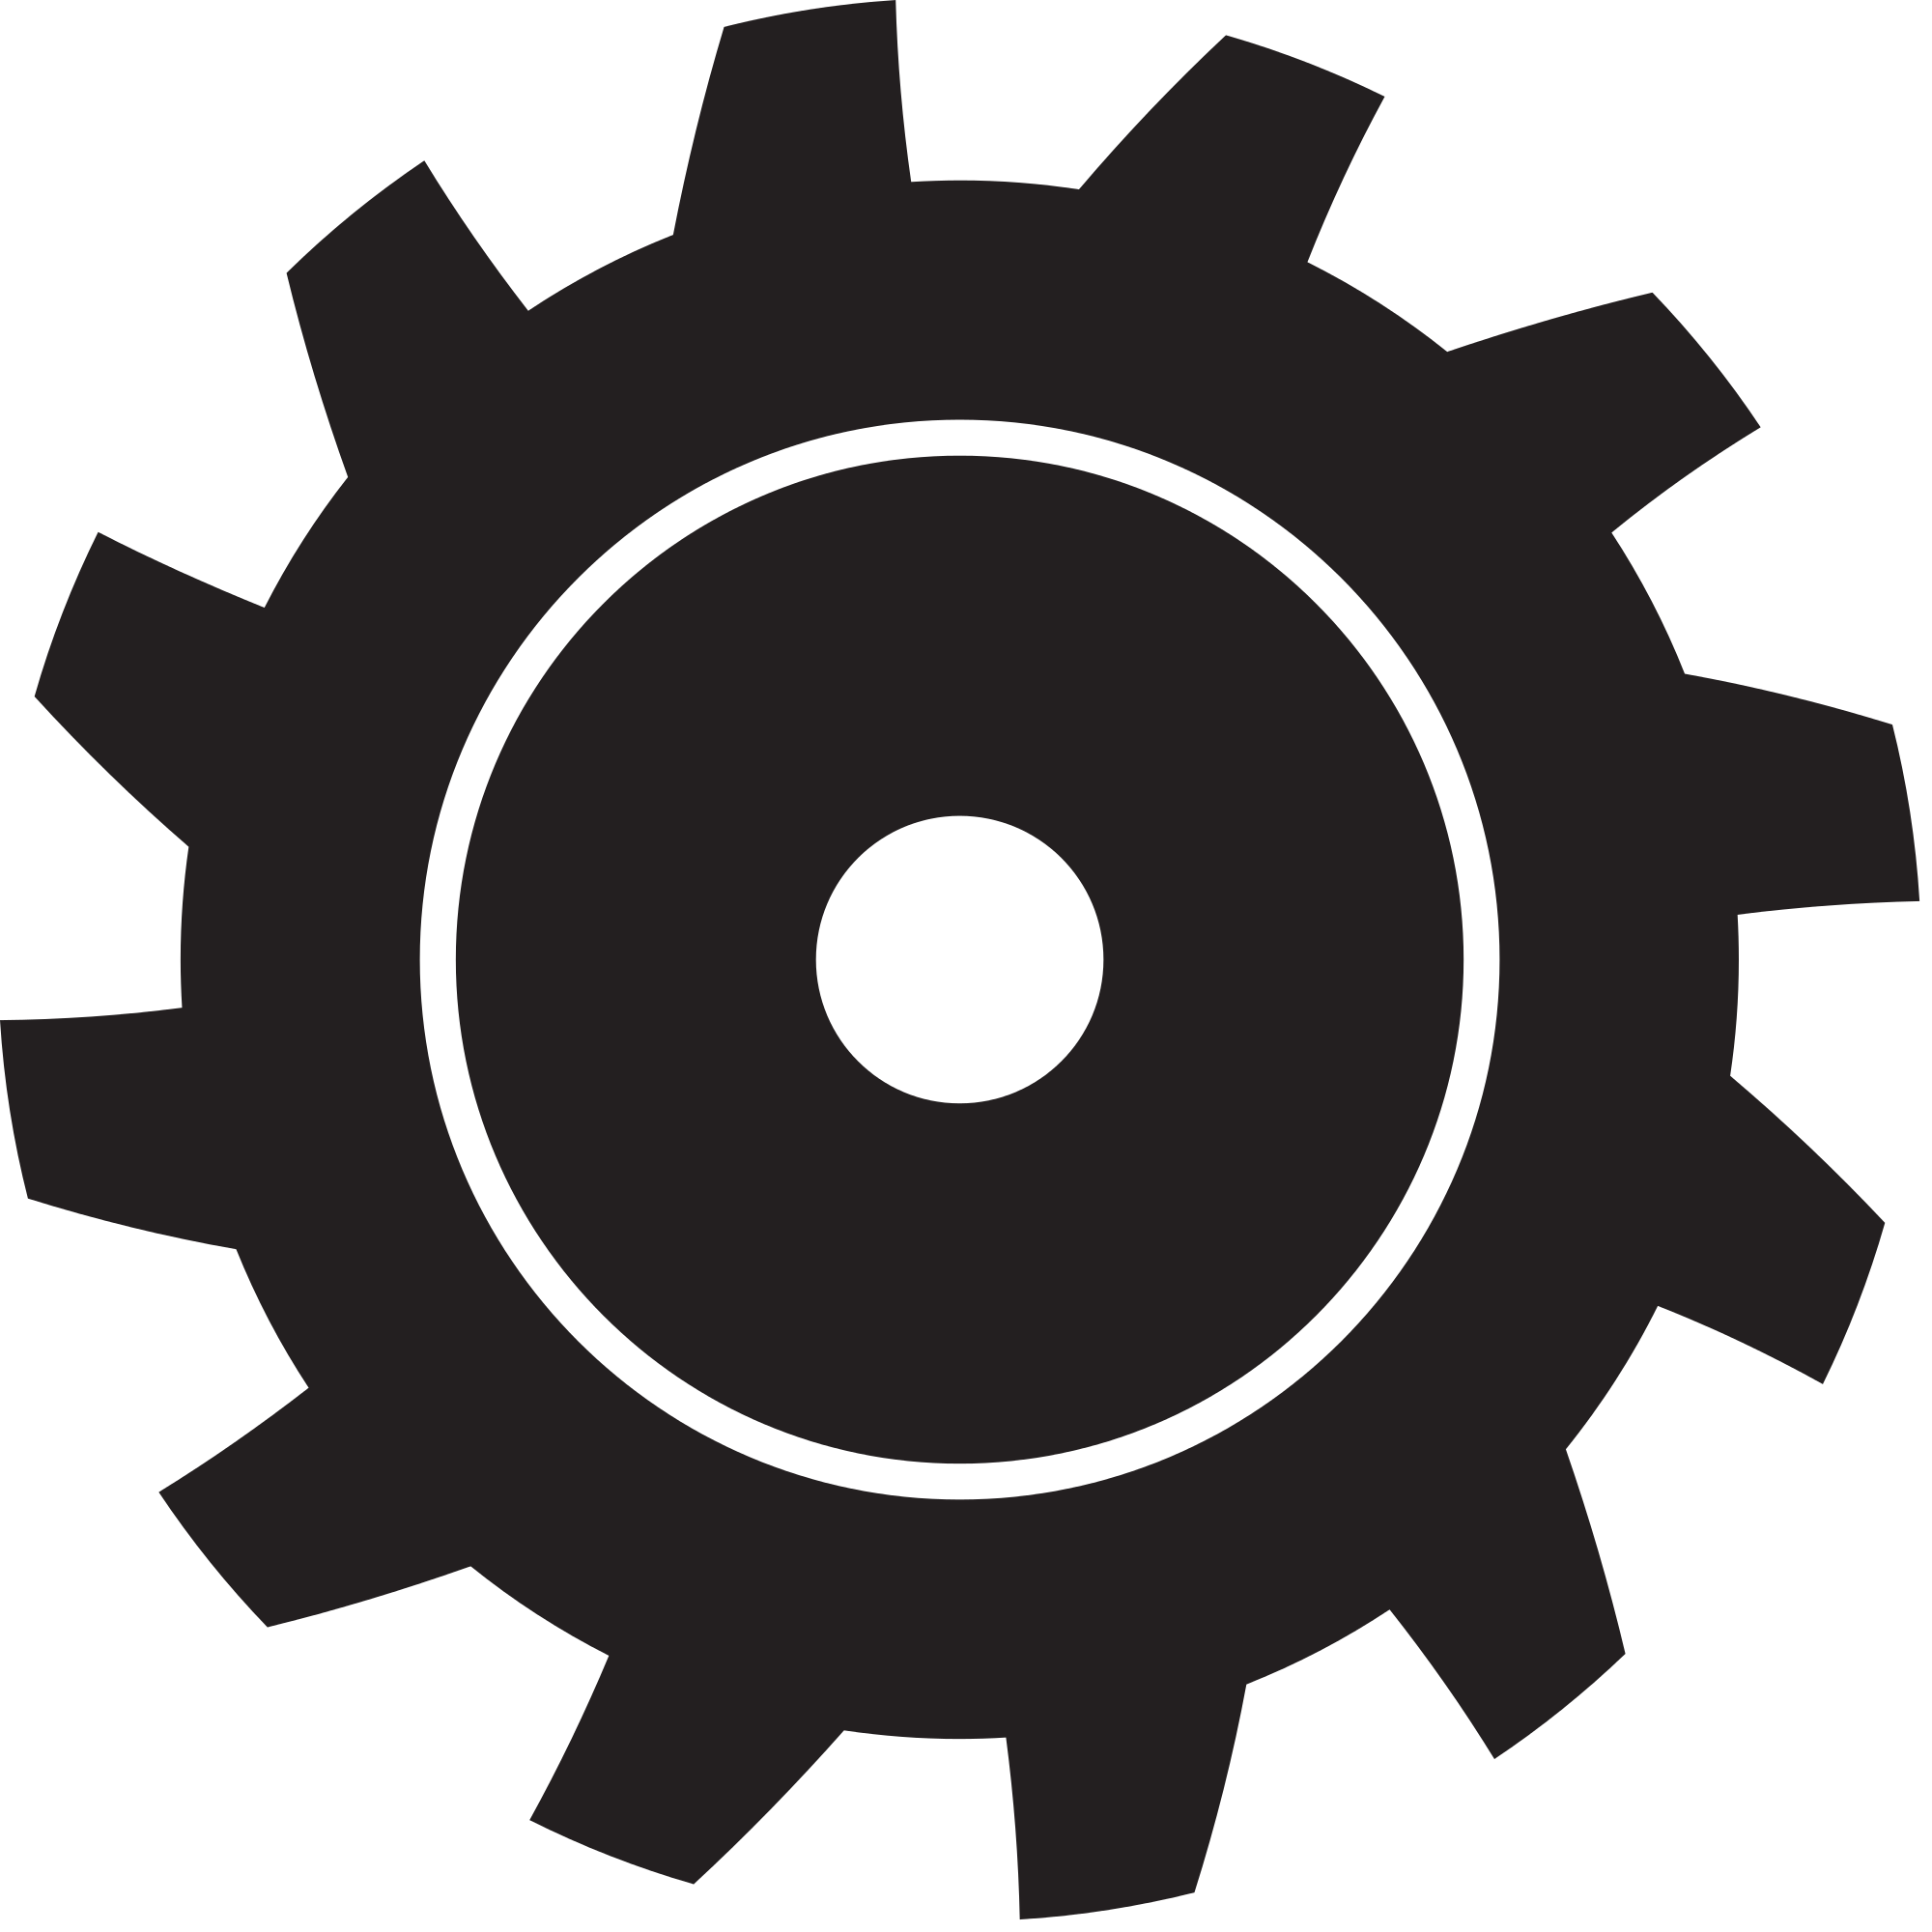 Svg gear black. File shape wikimedia commons